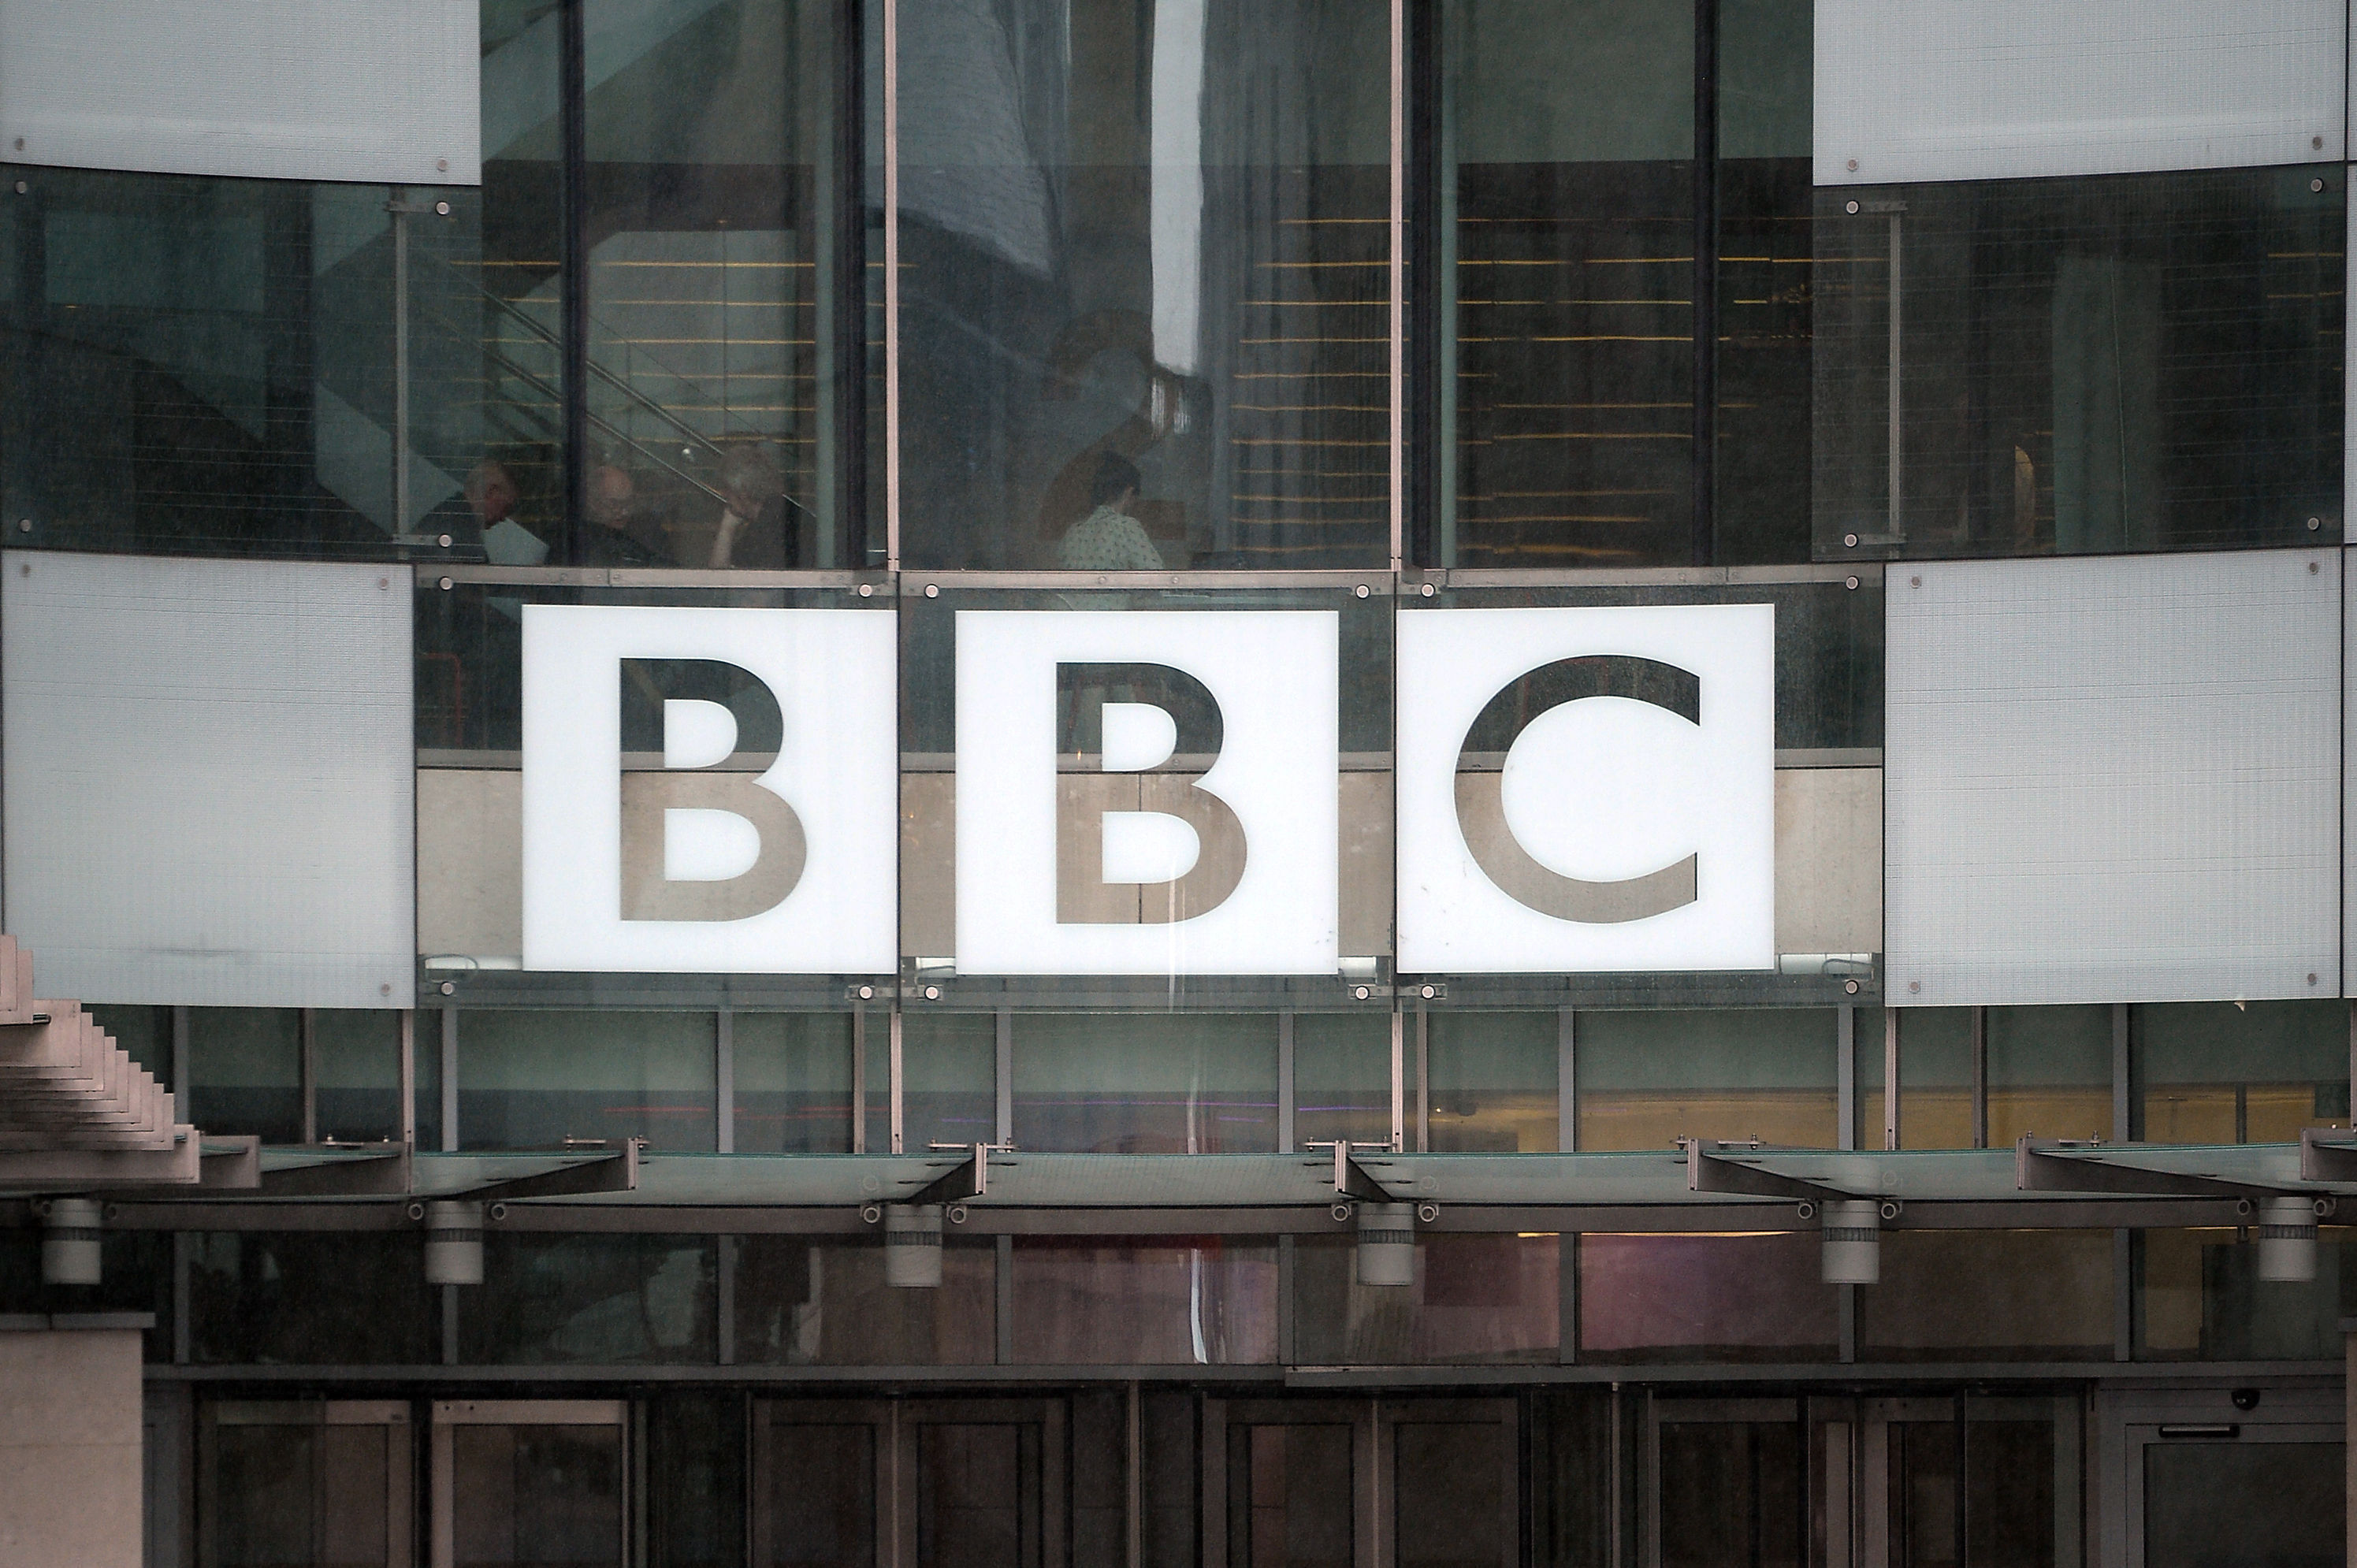 Ofcom imposes wide range of quotas on BBC